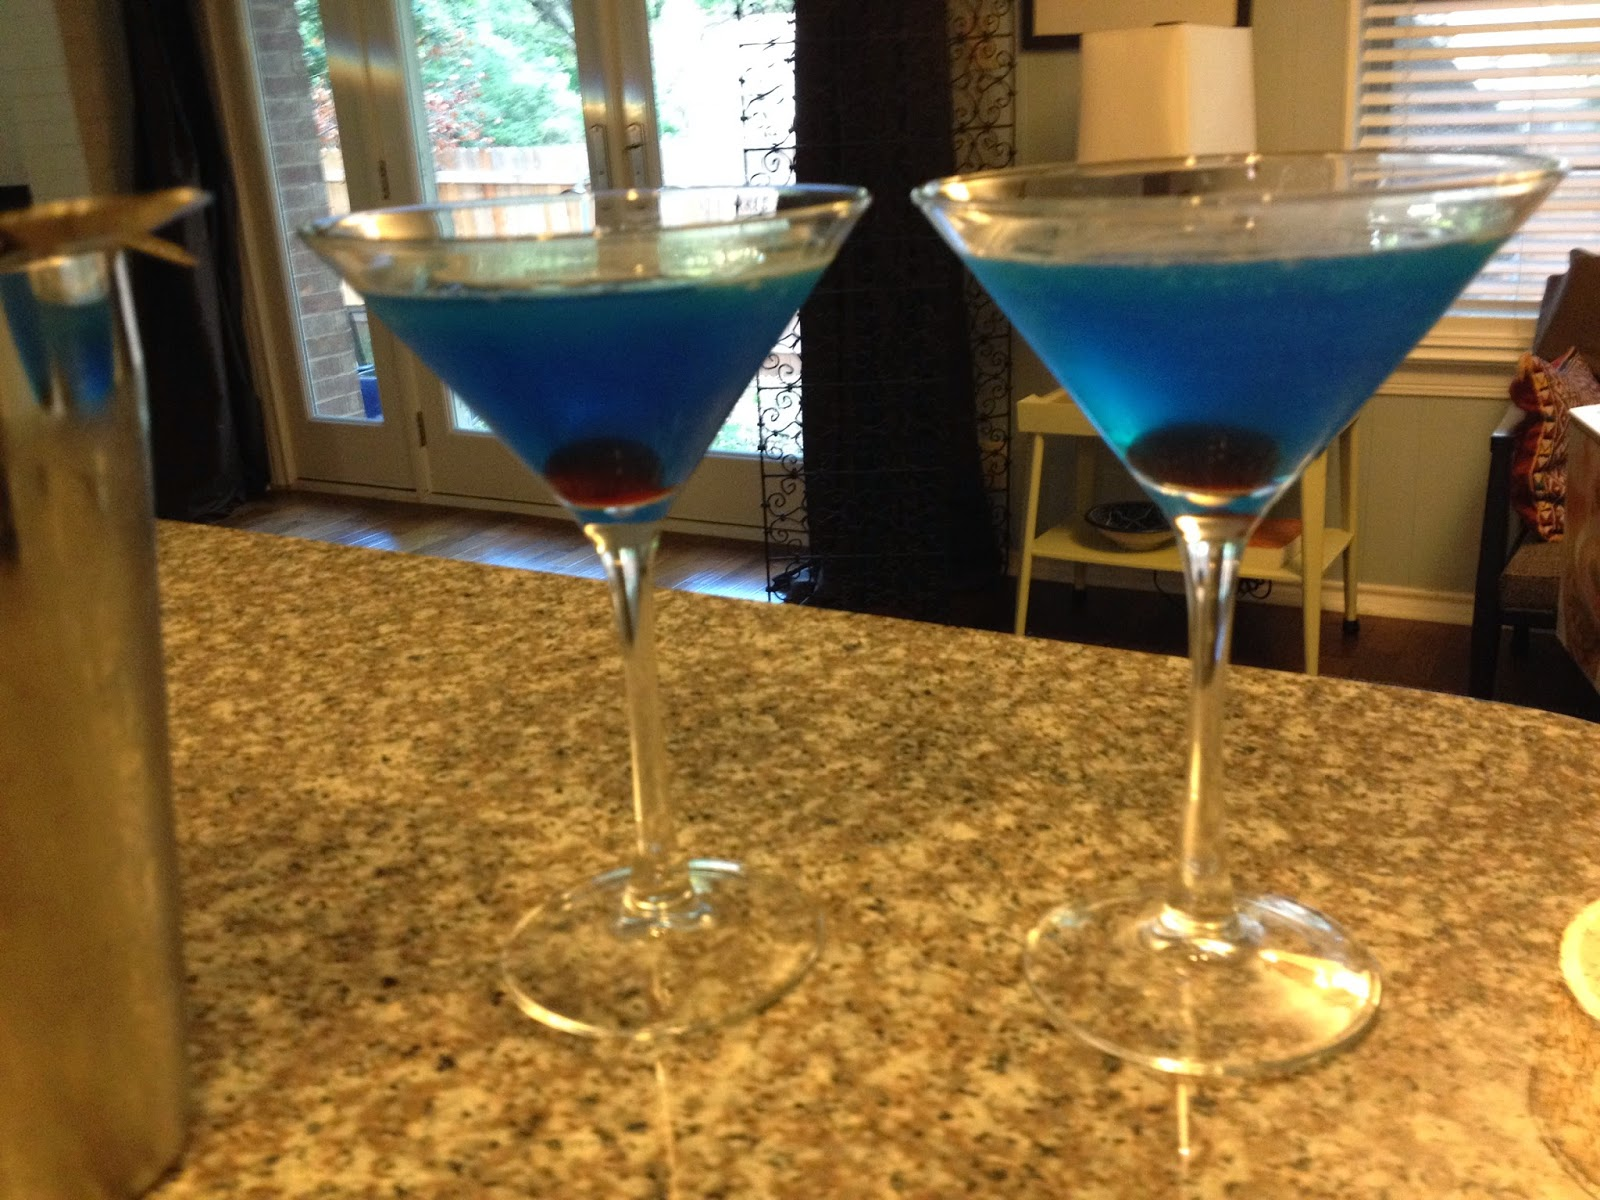 two martini glasses with Blue Riband cocktails